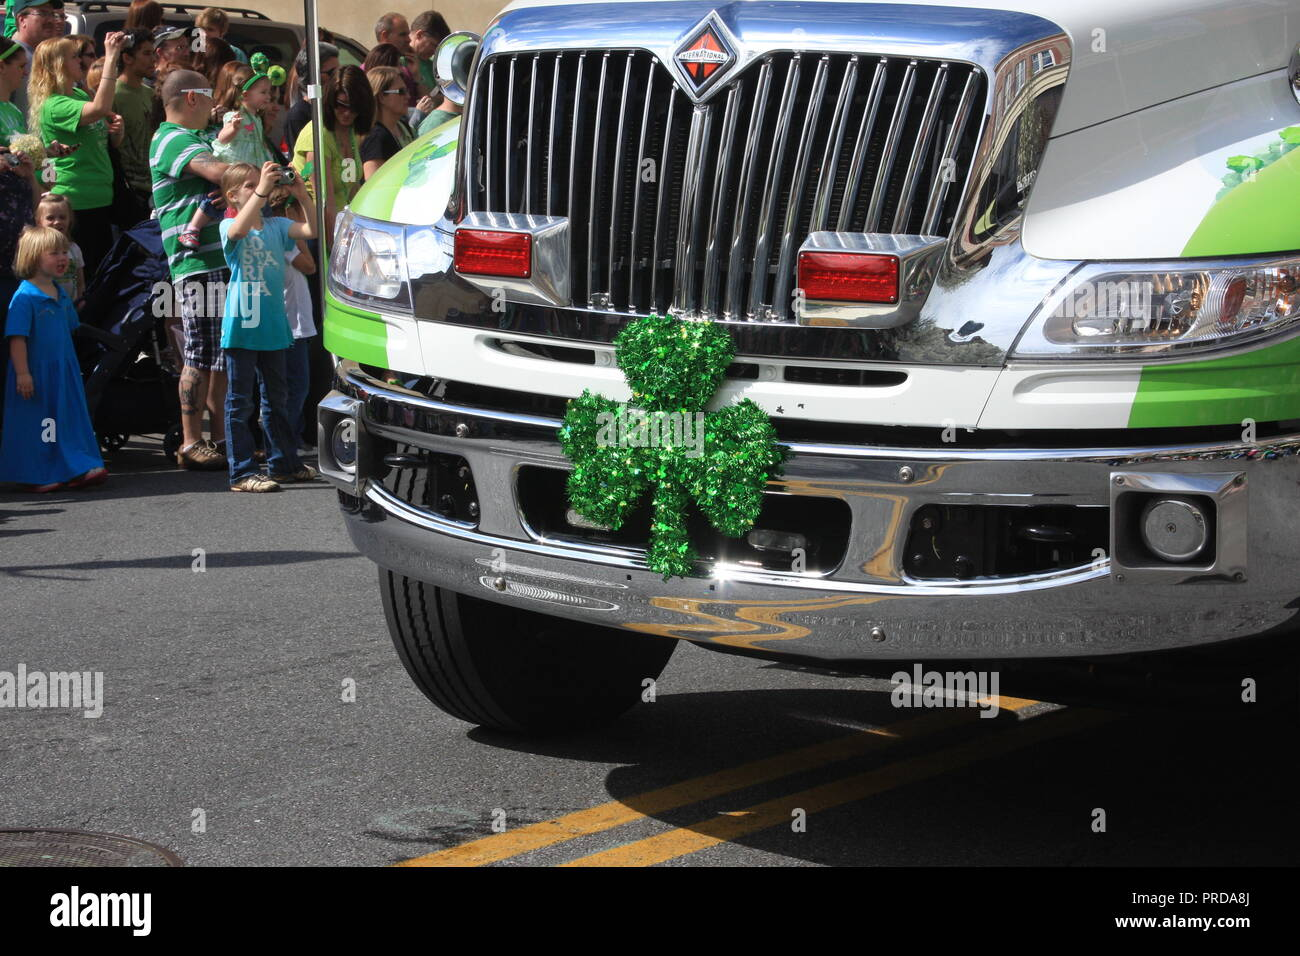 Shamrock Decorating Truck On St Patrick S Day Parade In Roanoke